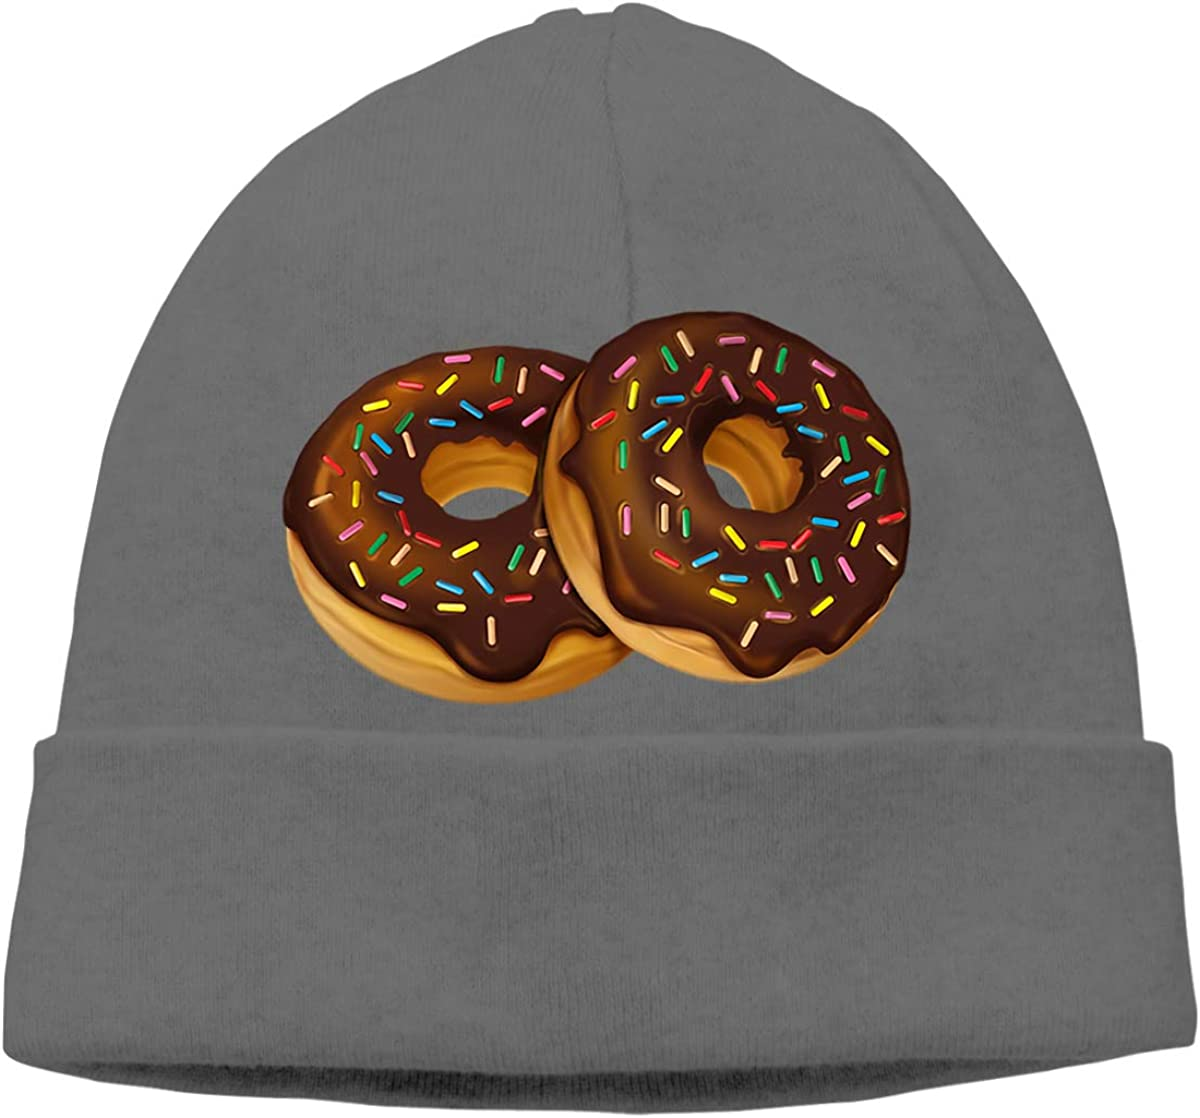 Delicious Donuts Chocolate Toping Unisex Cuffed Plain Skull Knitted Hat Beanie Cap Men Women Black